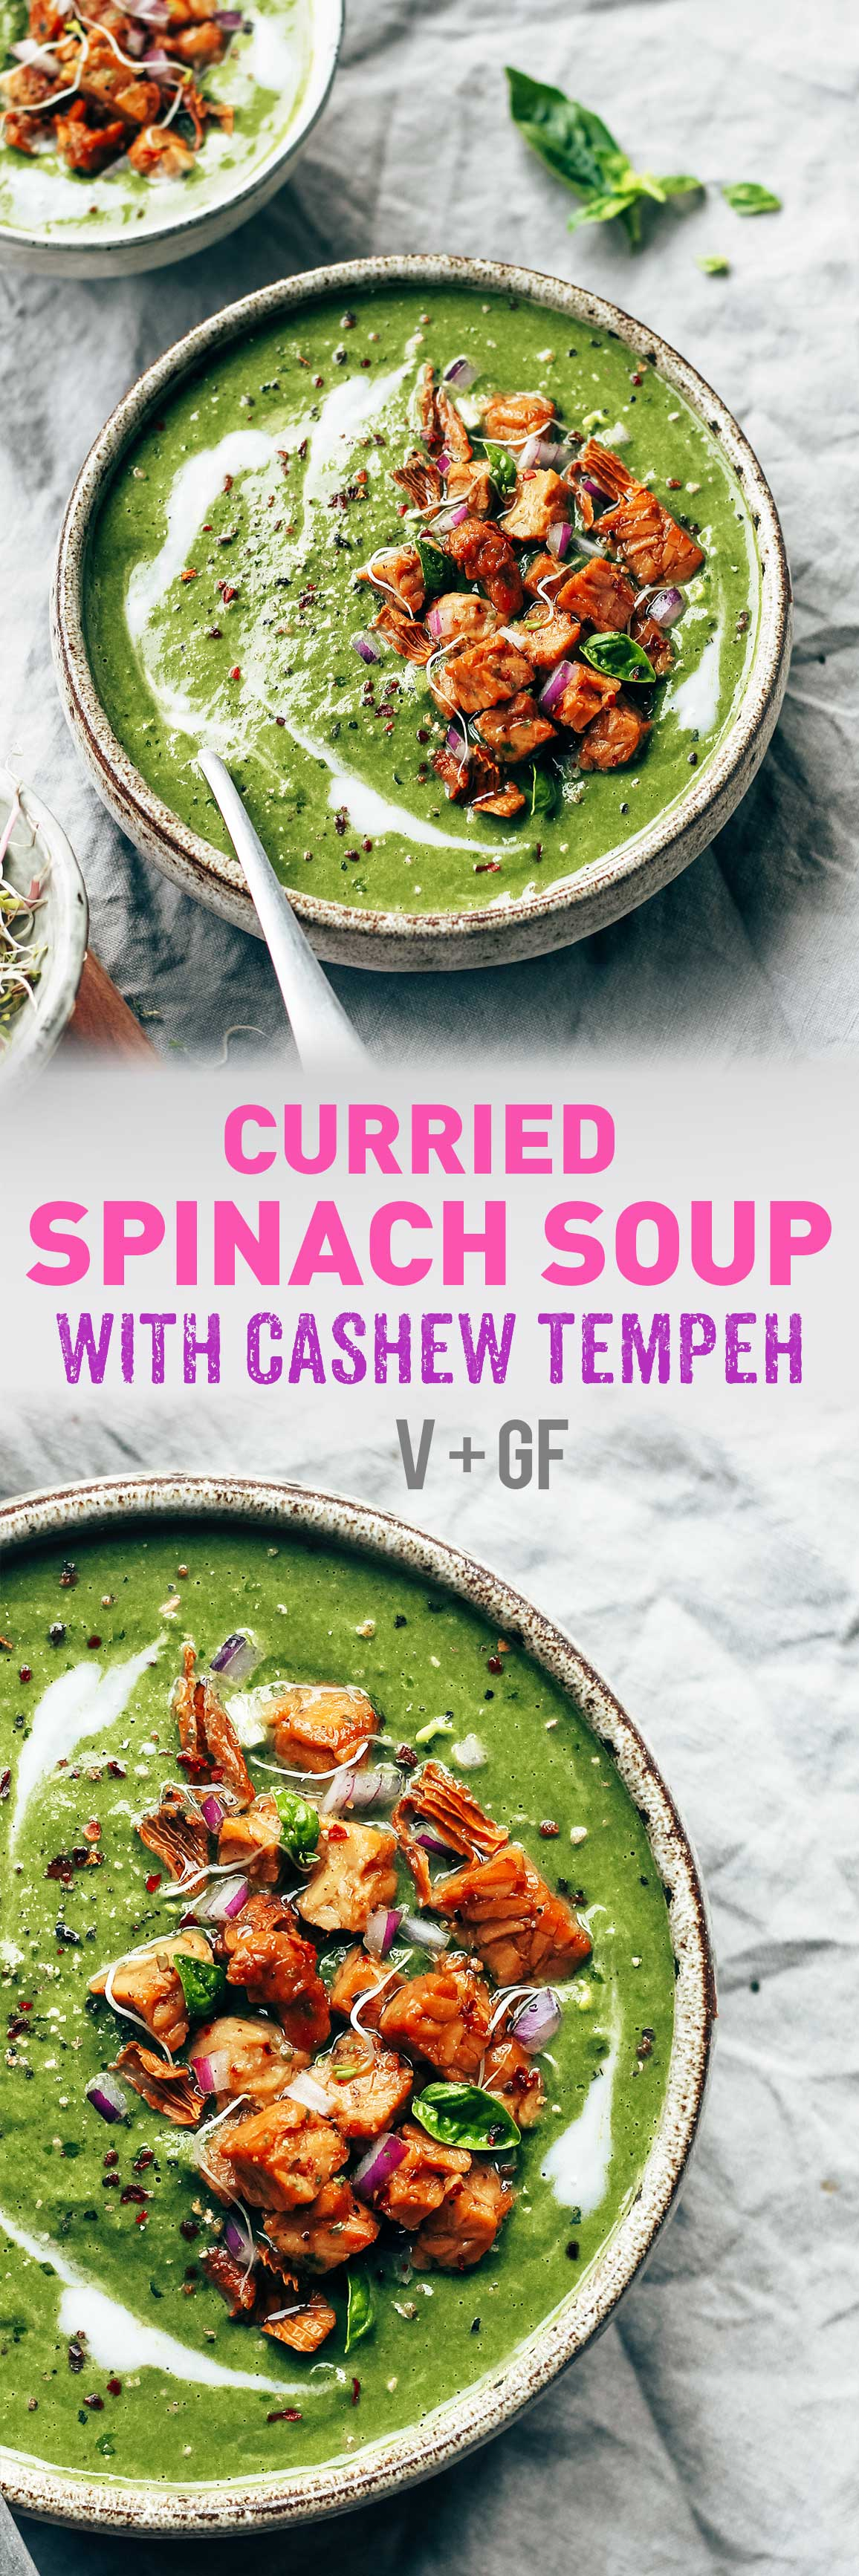 Curried Spinach Soup with Cashew Tempeh